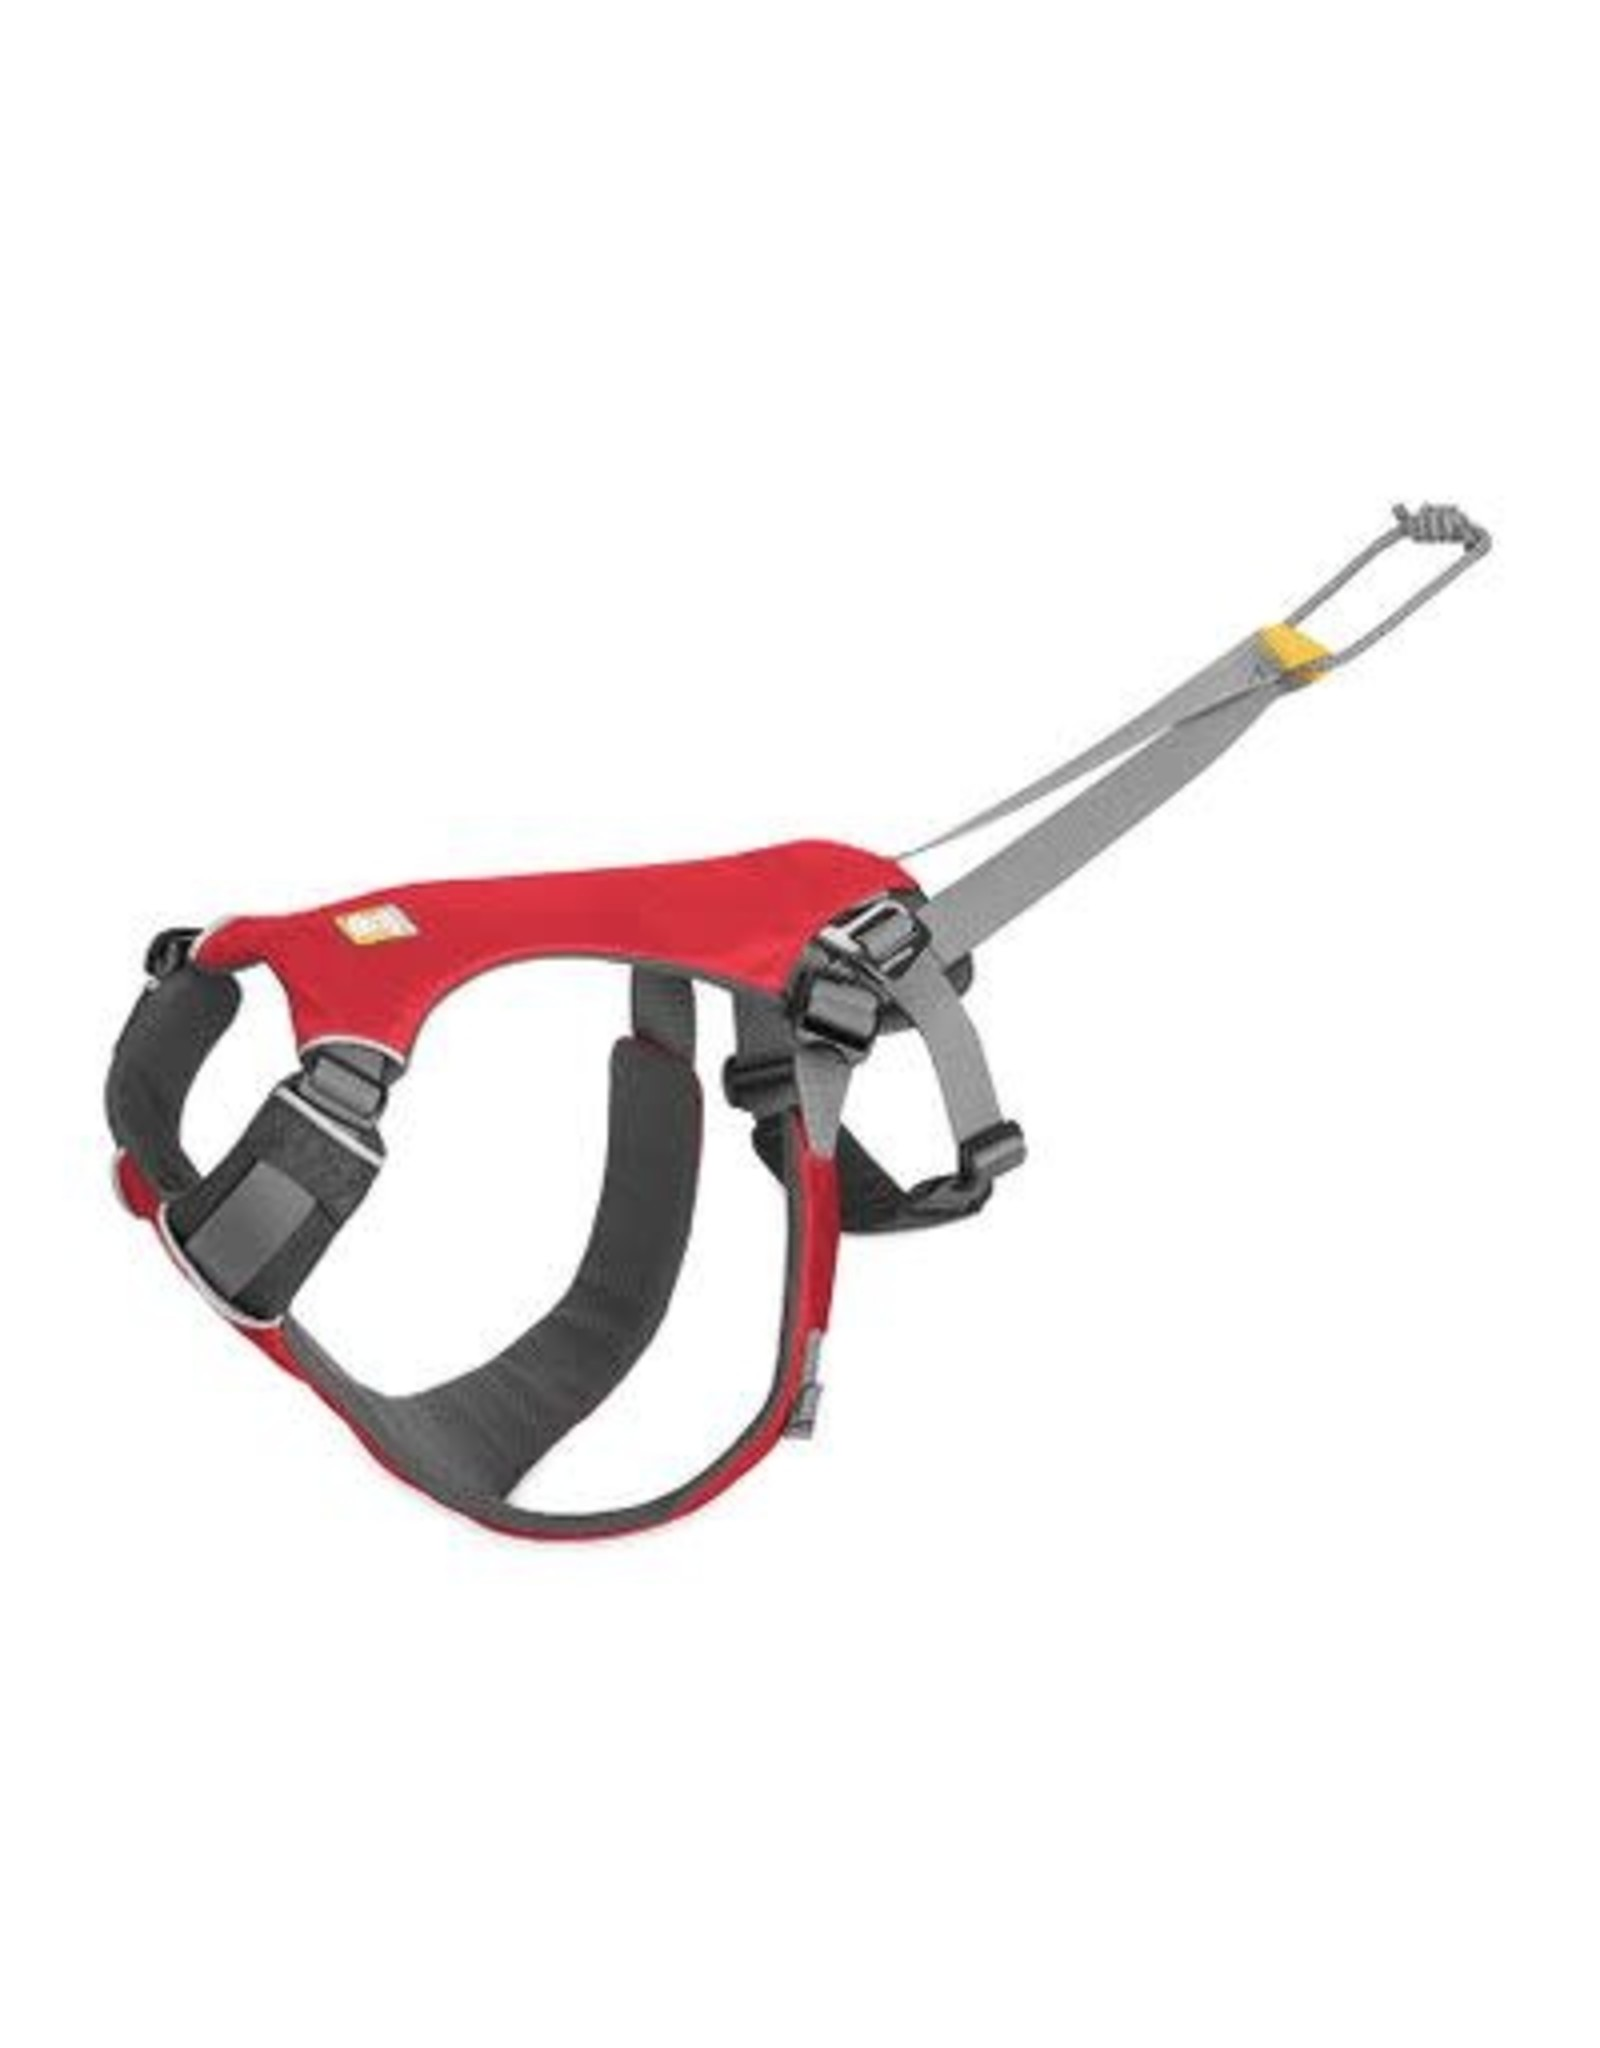 Omnijore Joring System: Red Curant, M